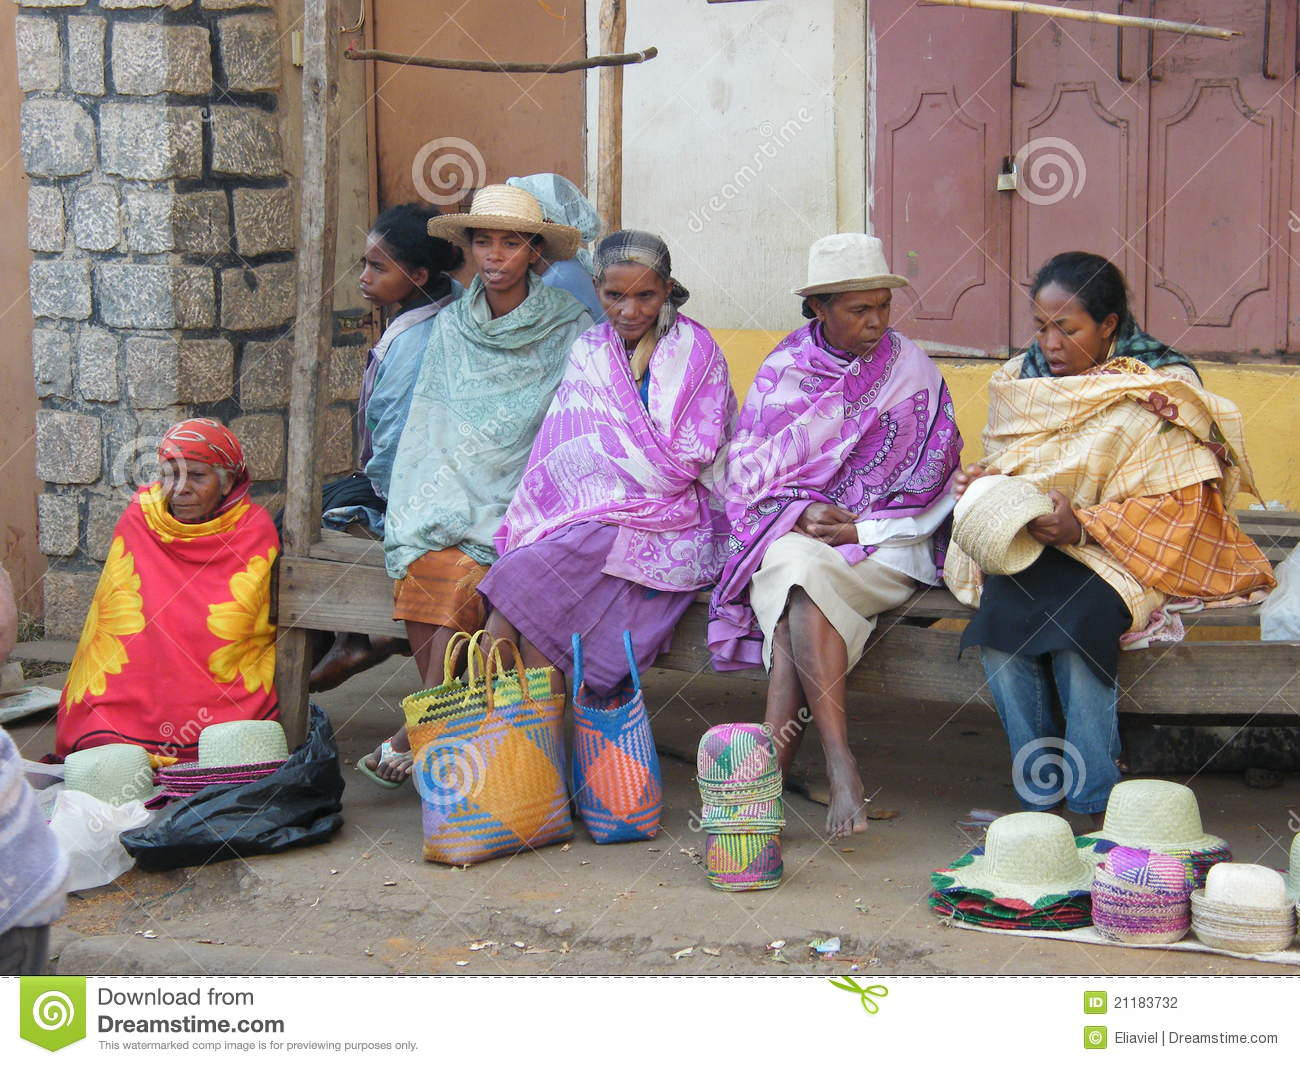 Malagasy people